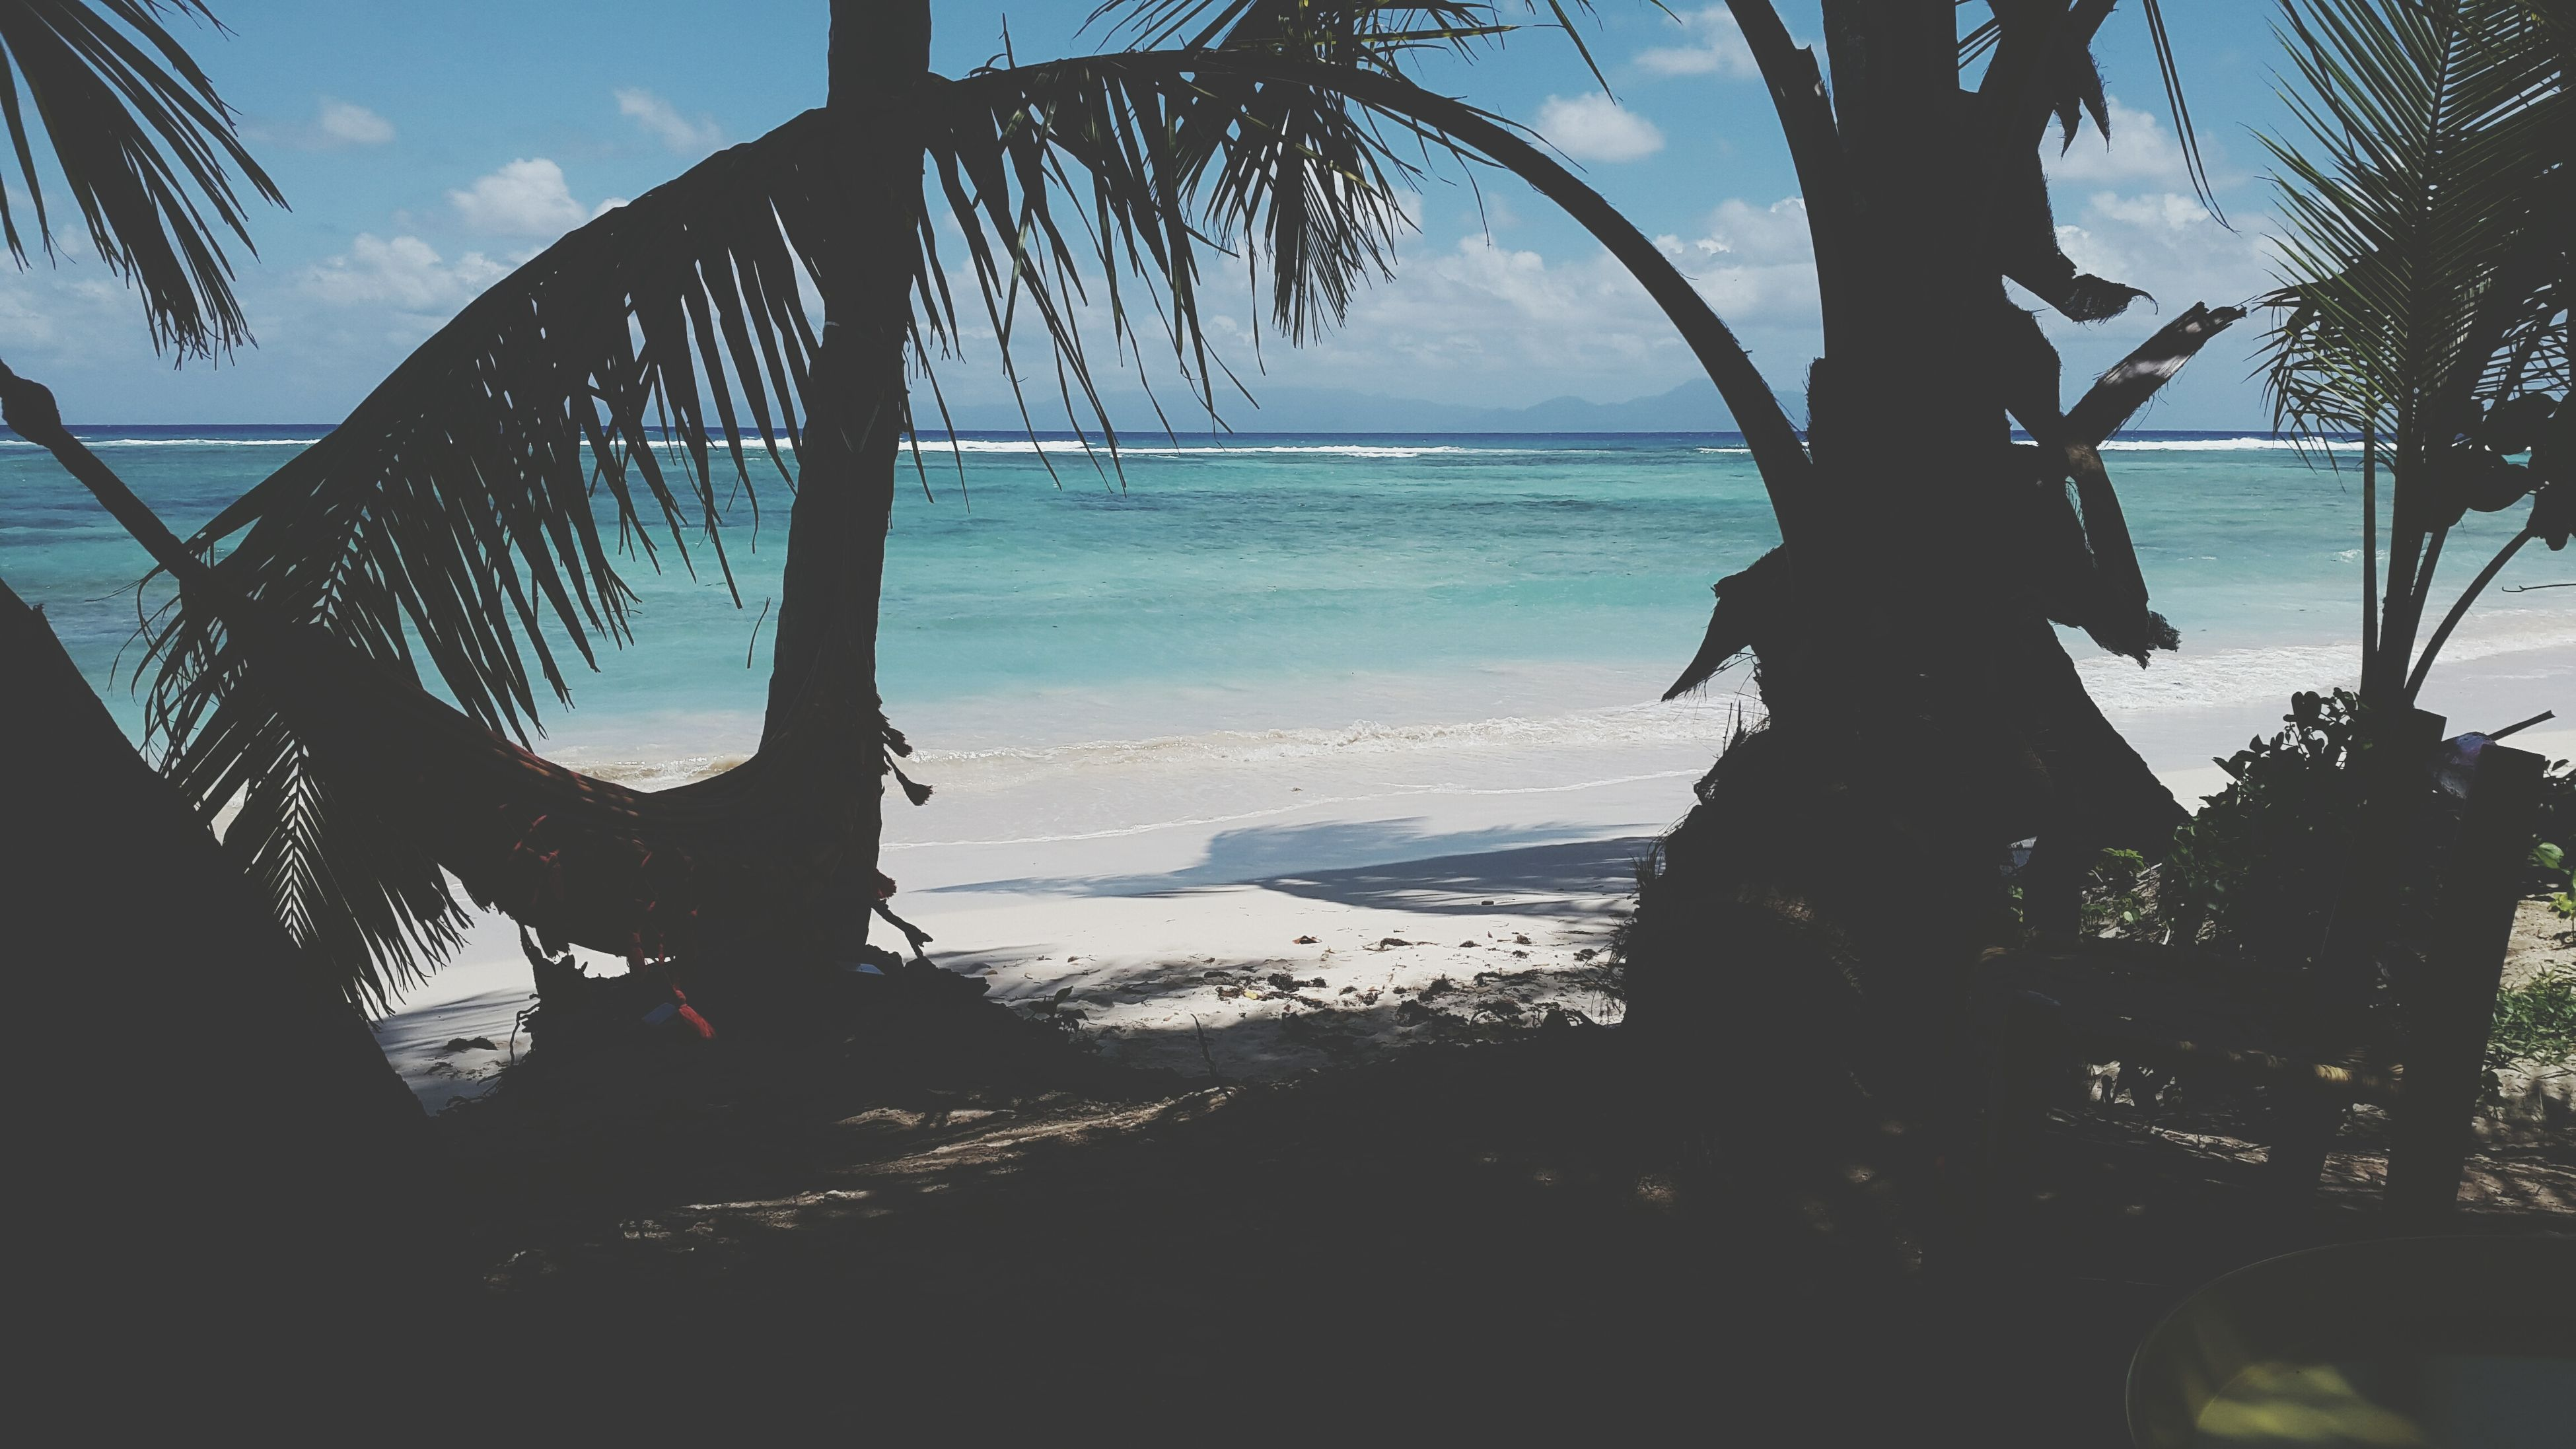 sea, beach, scenics, beauty in nature, nature, horizon over water, tree, water, tranquility, tranquil scene, sky, day, palm tree, tree trunk, outdoors, branch, no people